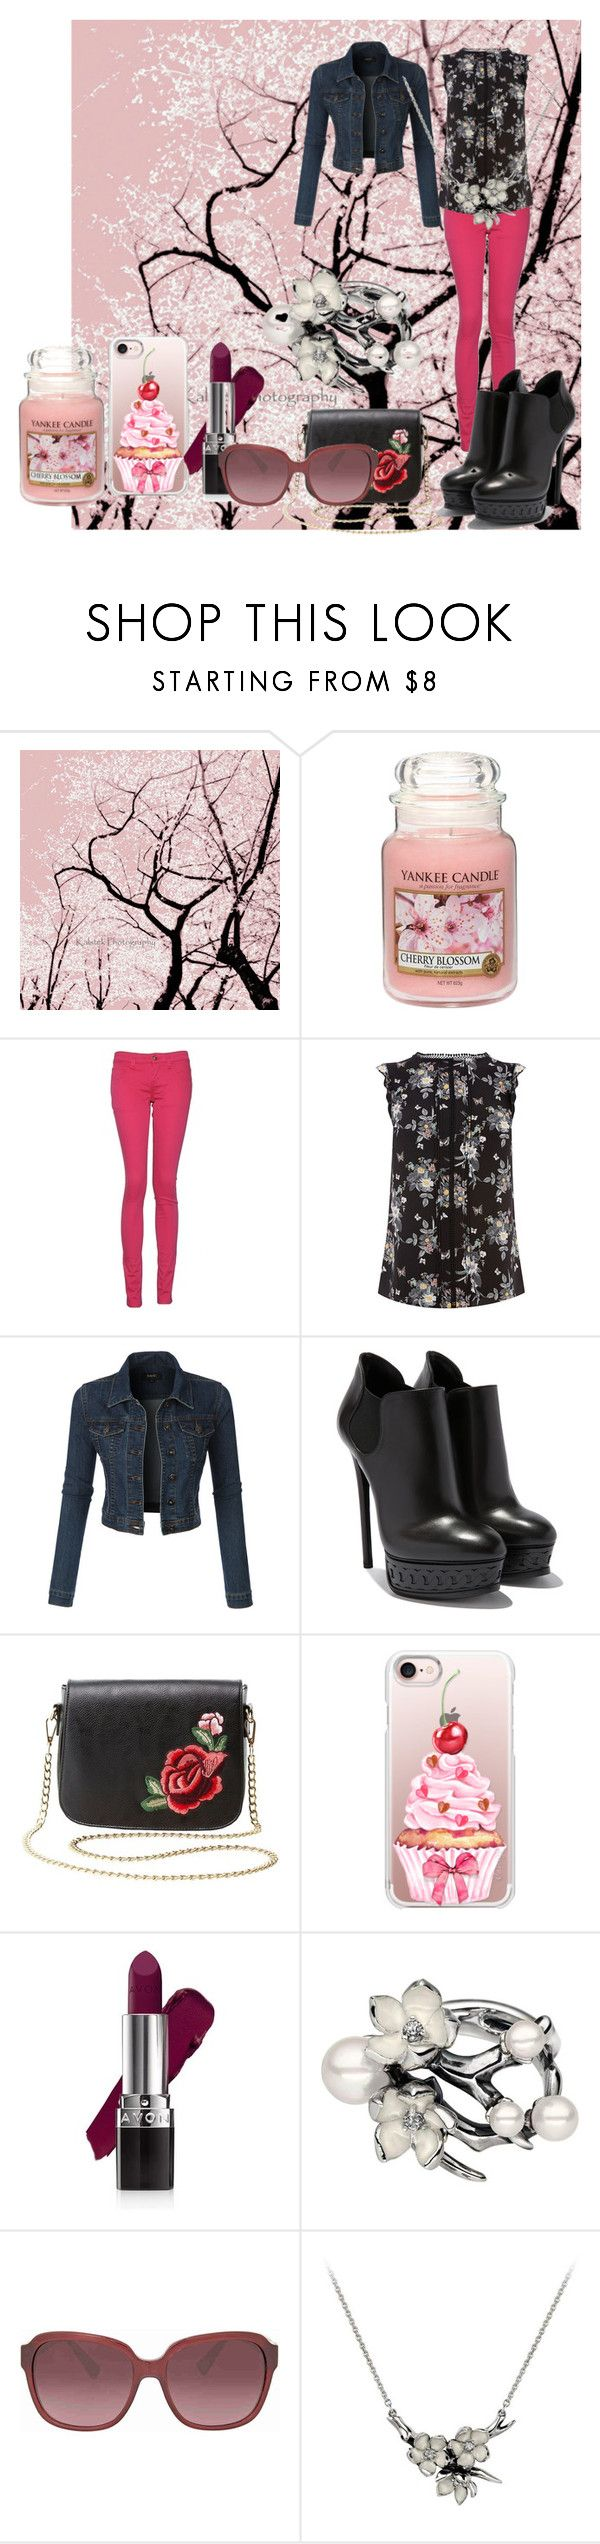 """cherry"" by viviana519 ❤ liked on Polyvore featuring Yankee Candle, Monkee Genes, LE3NO, Charlotte Russe, Casetify, Avon, Shaun Leane and Coach"